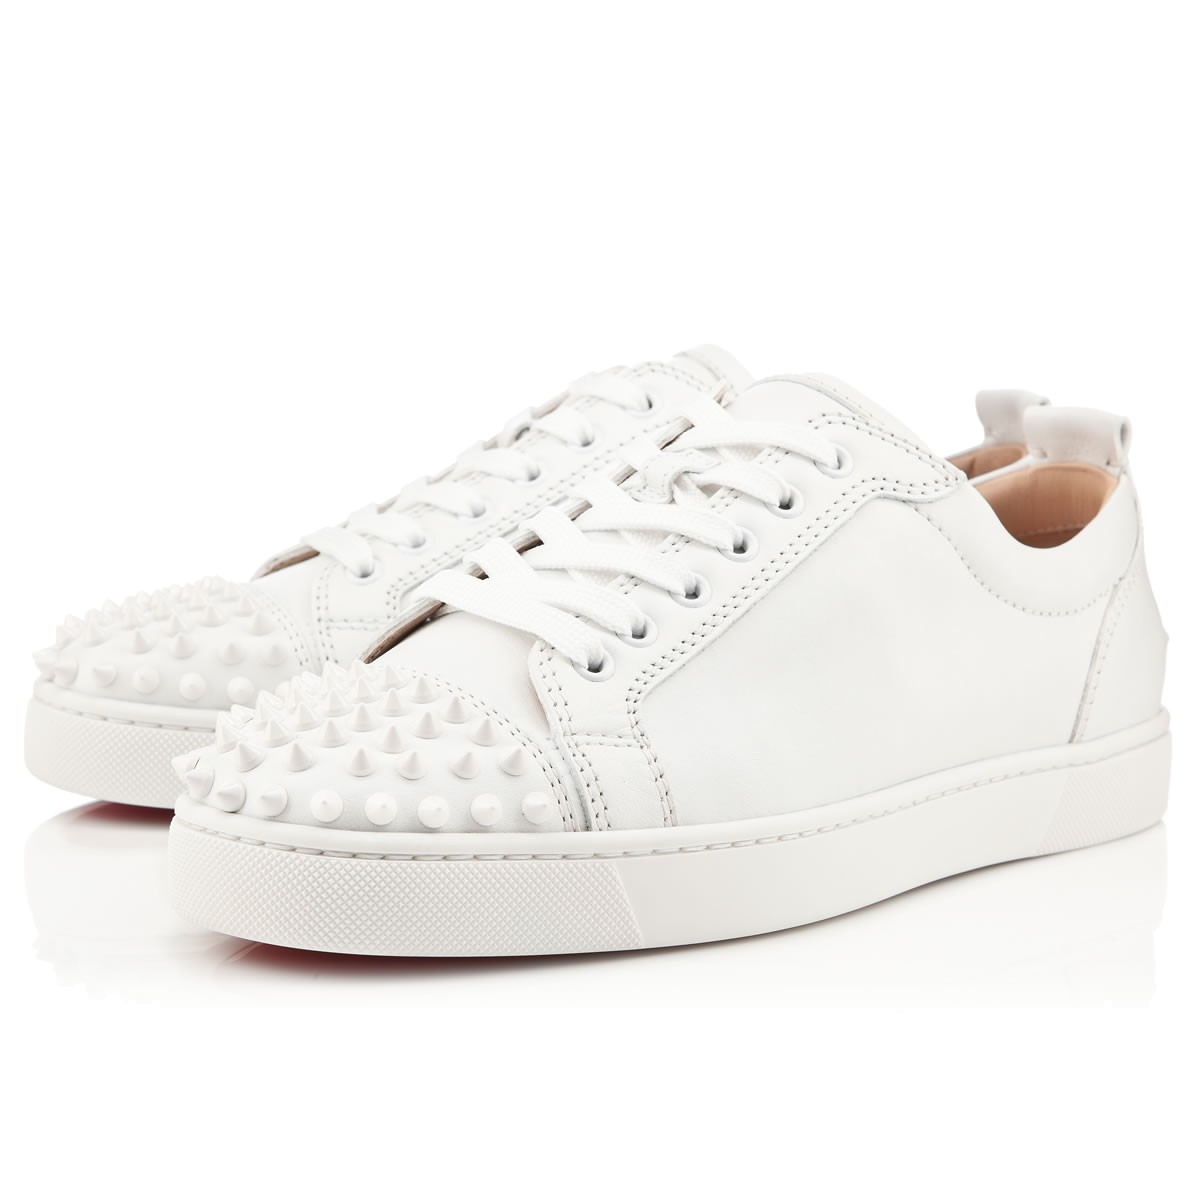 outlet store f4605 ac27a Louis Junior Spikes White/White Leather - Men Shoes - Christian Louboutin